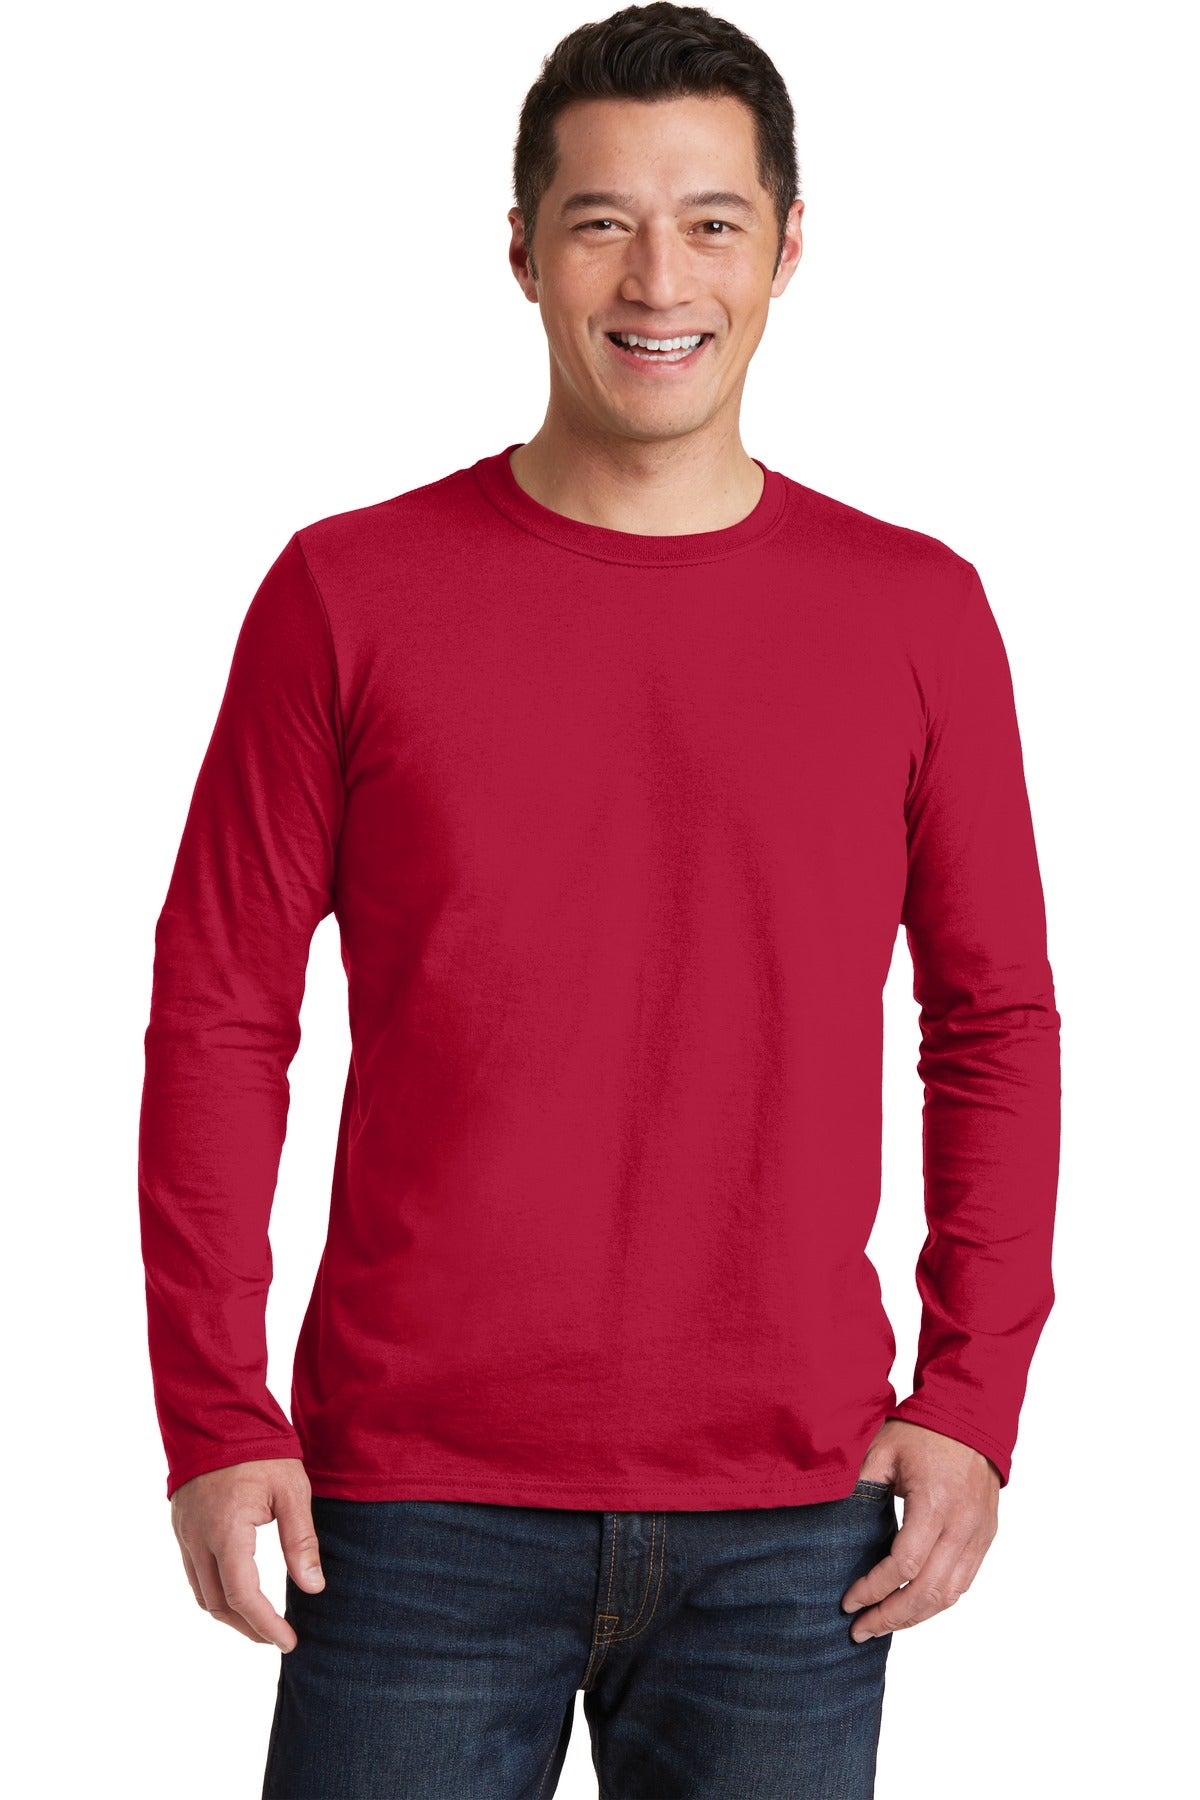 Gildan Softstyle® Long Sleeve T-Shirt. 64400 - Aspire Zone